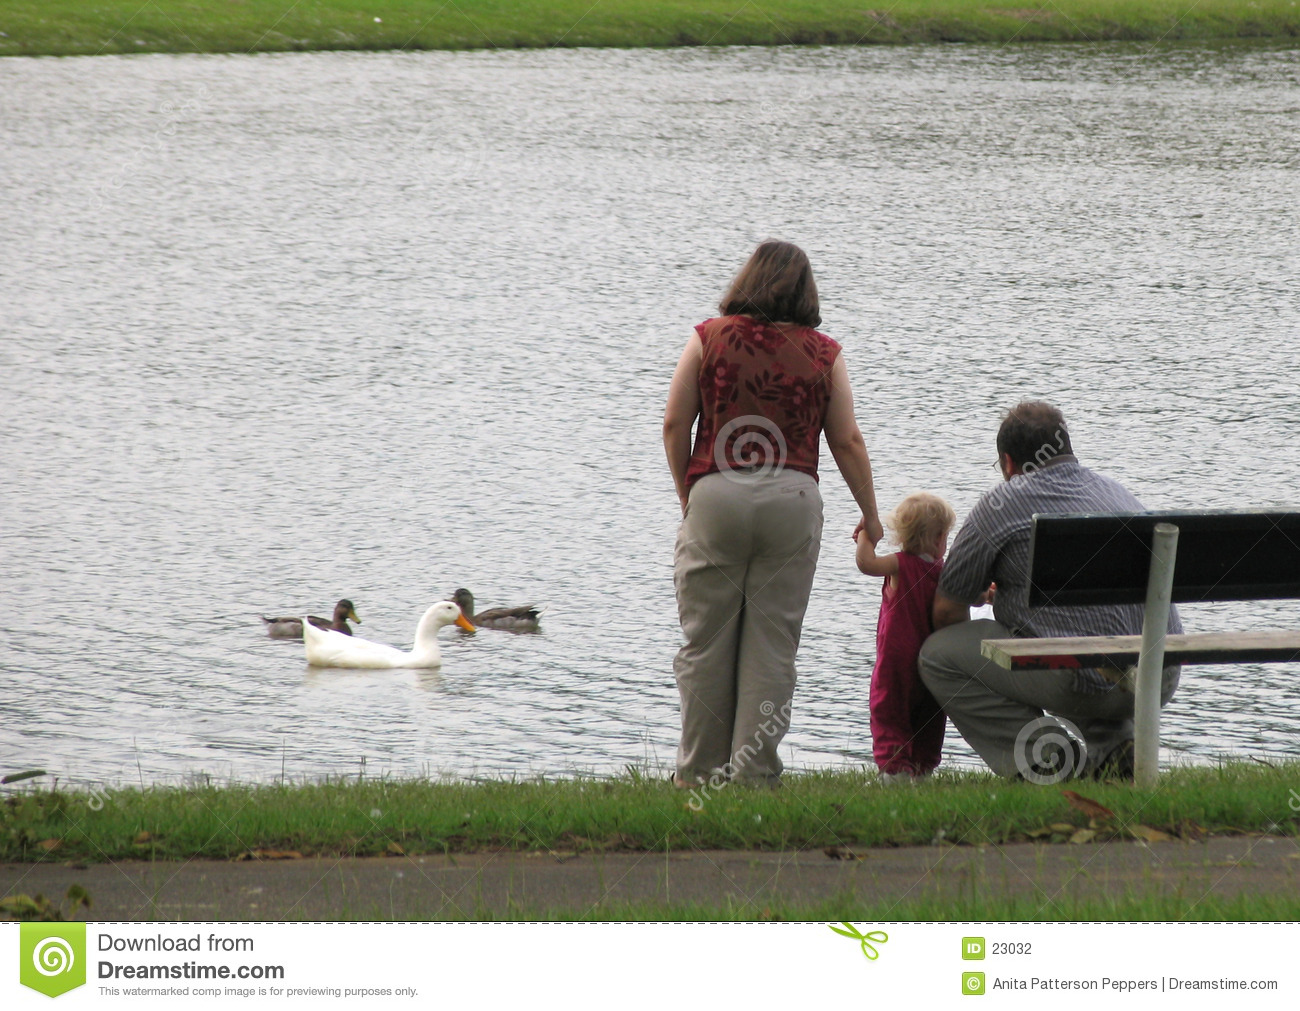 Familie in dem See